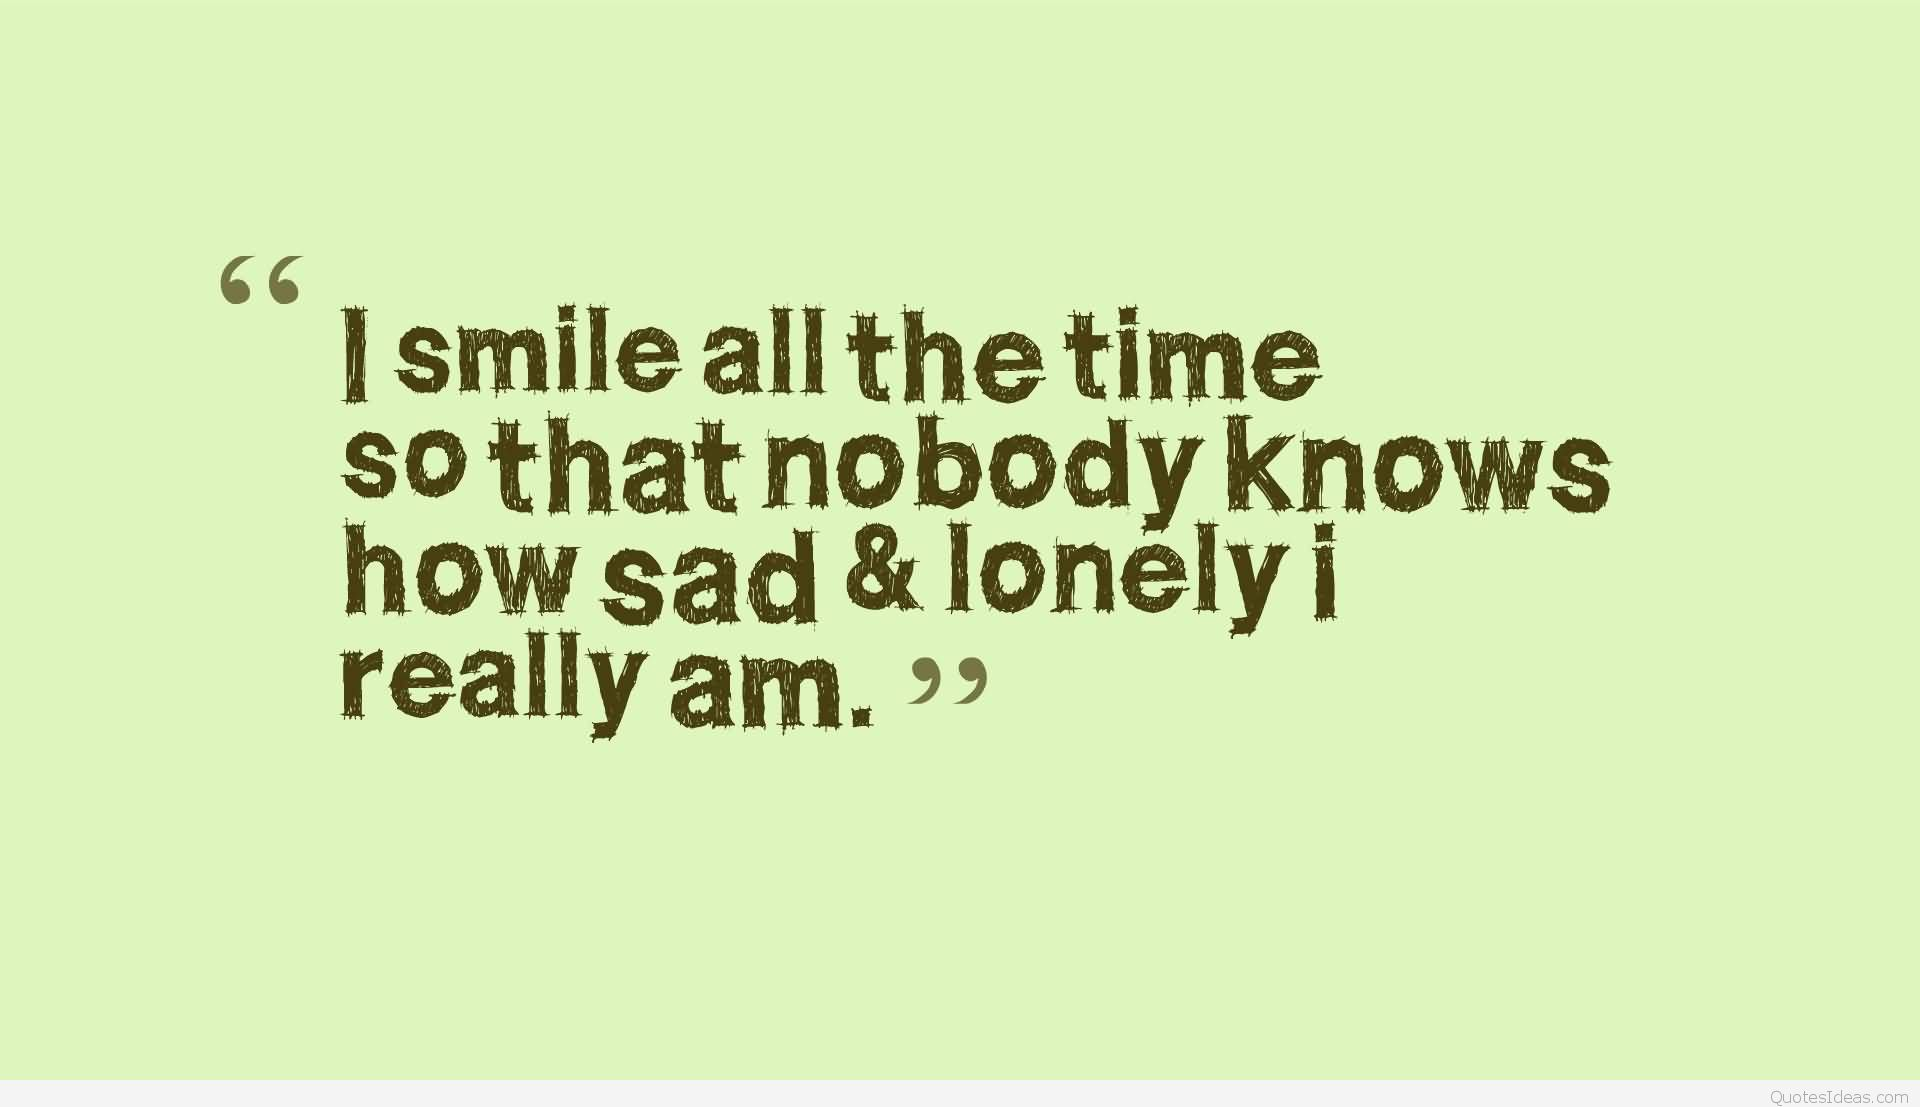 Sad lonely quote image